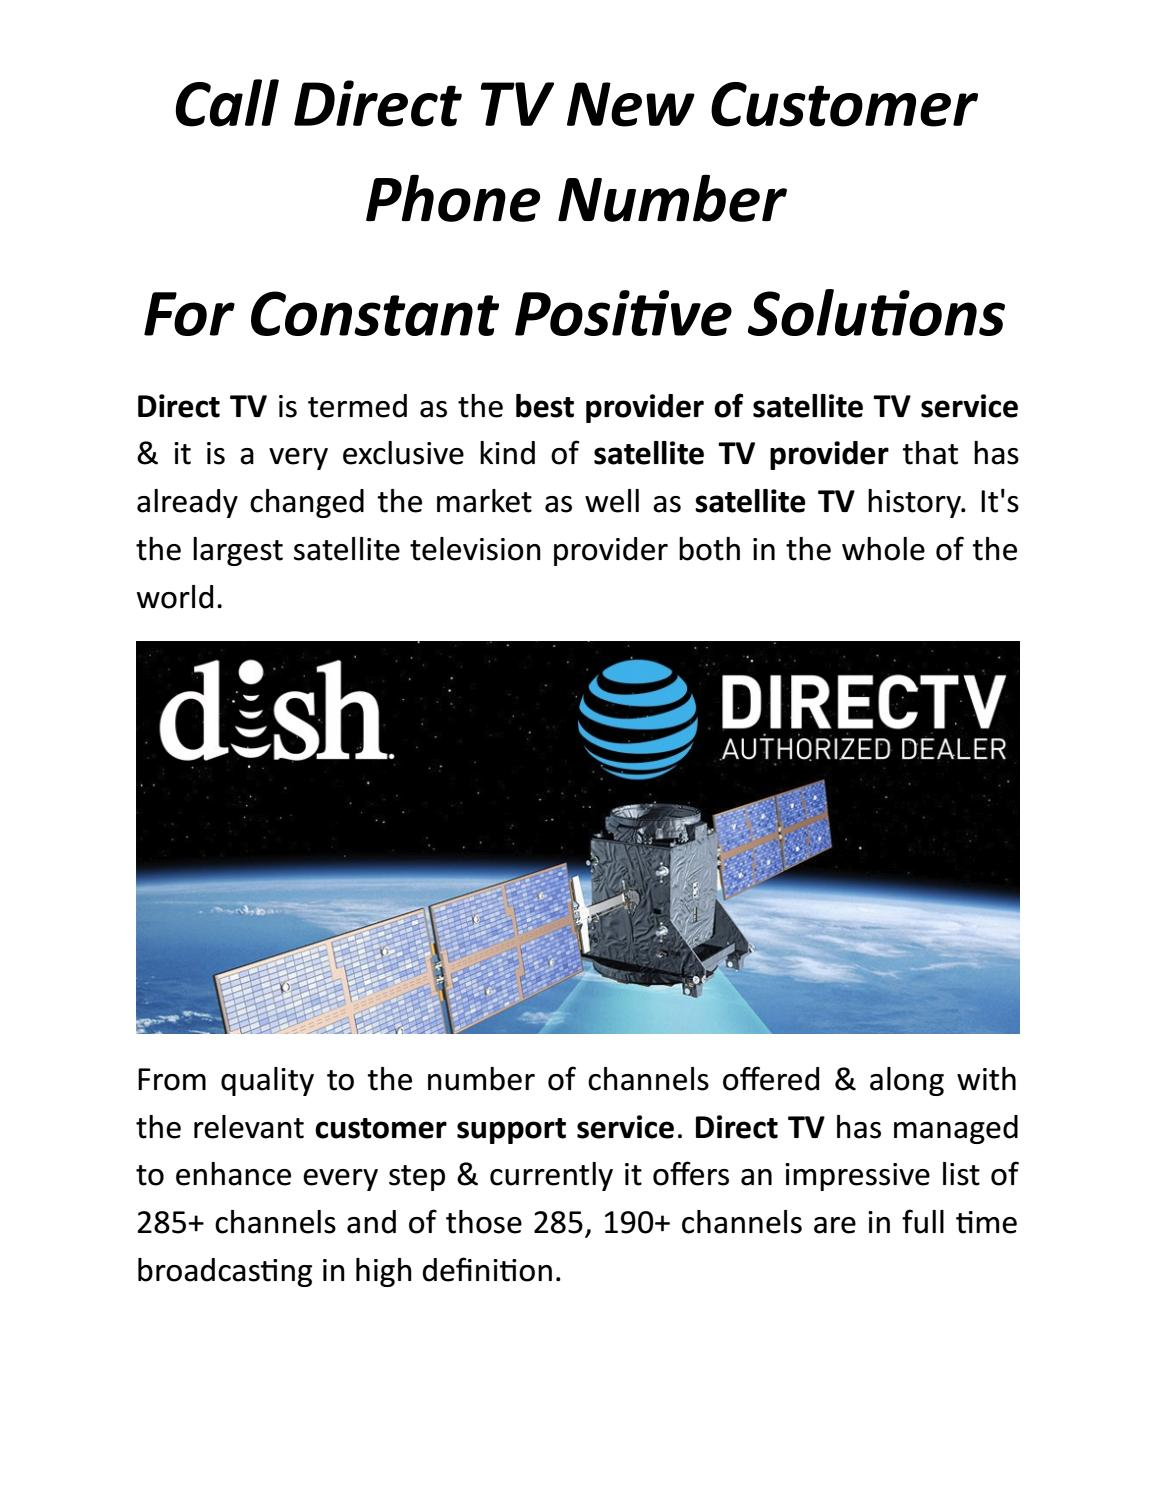 call direct tv new customer phone number for constant positive